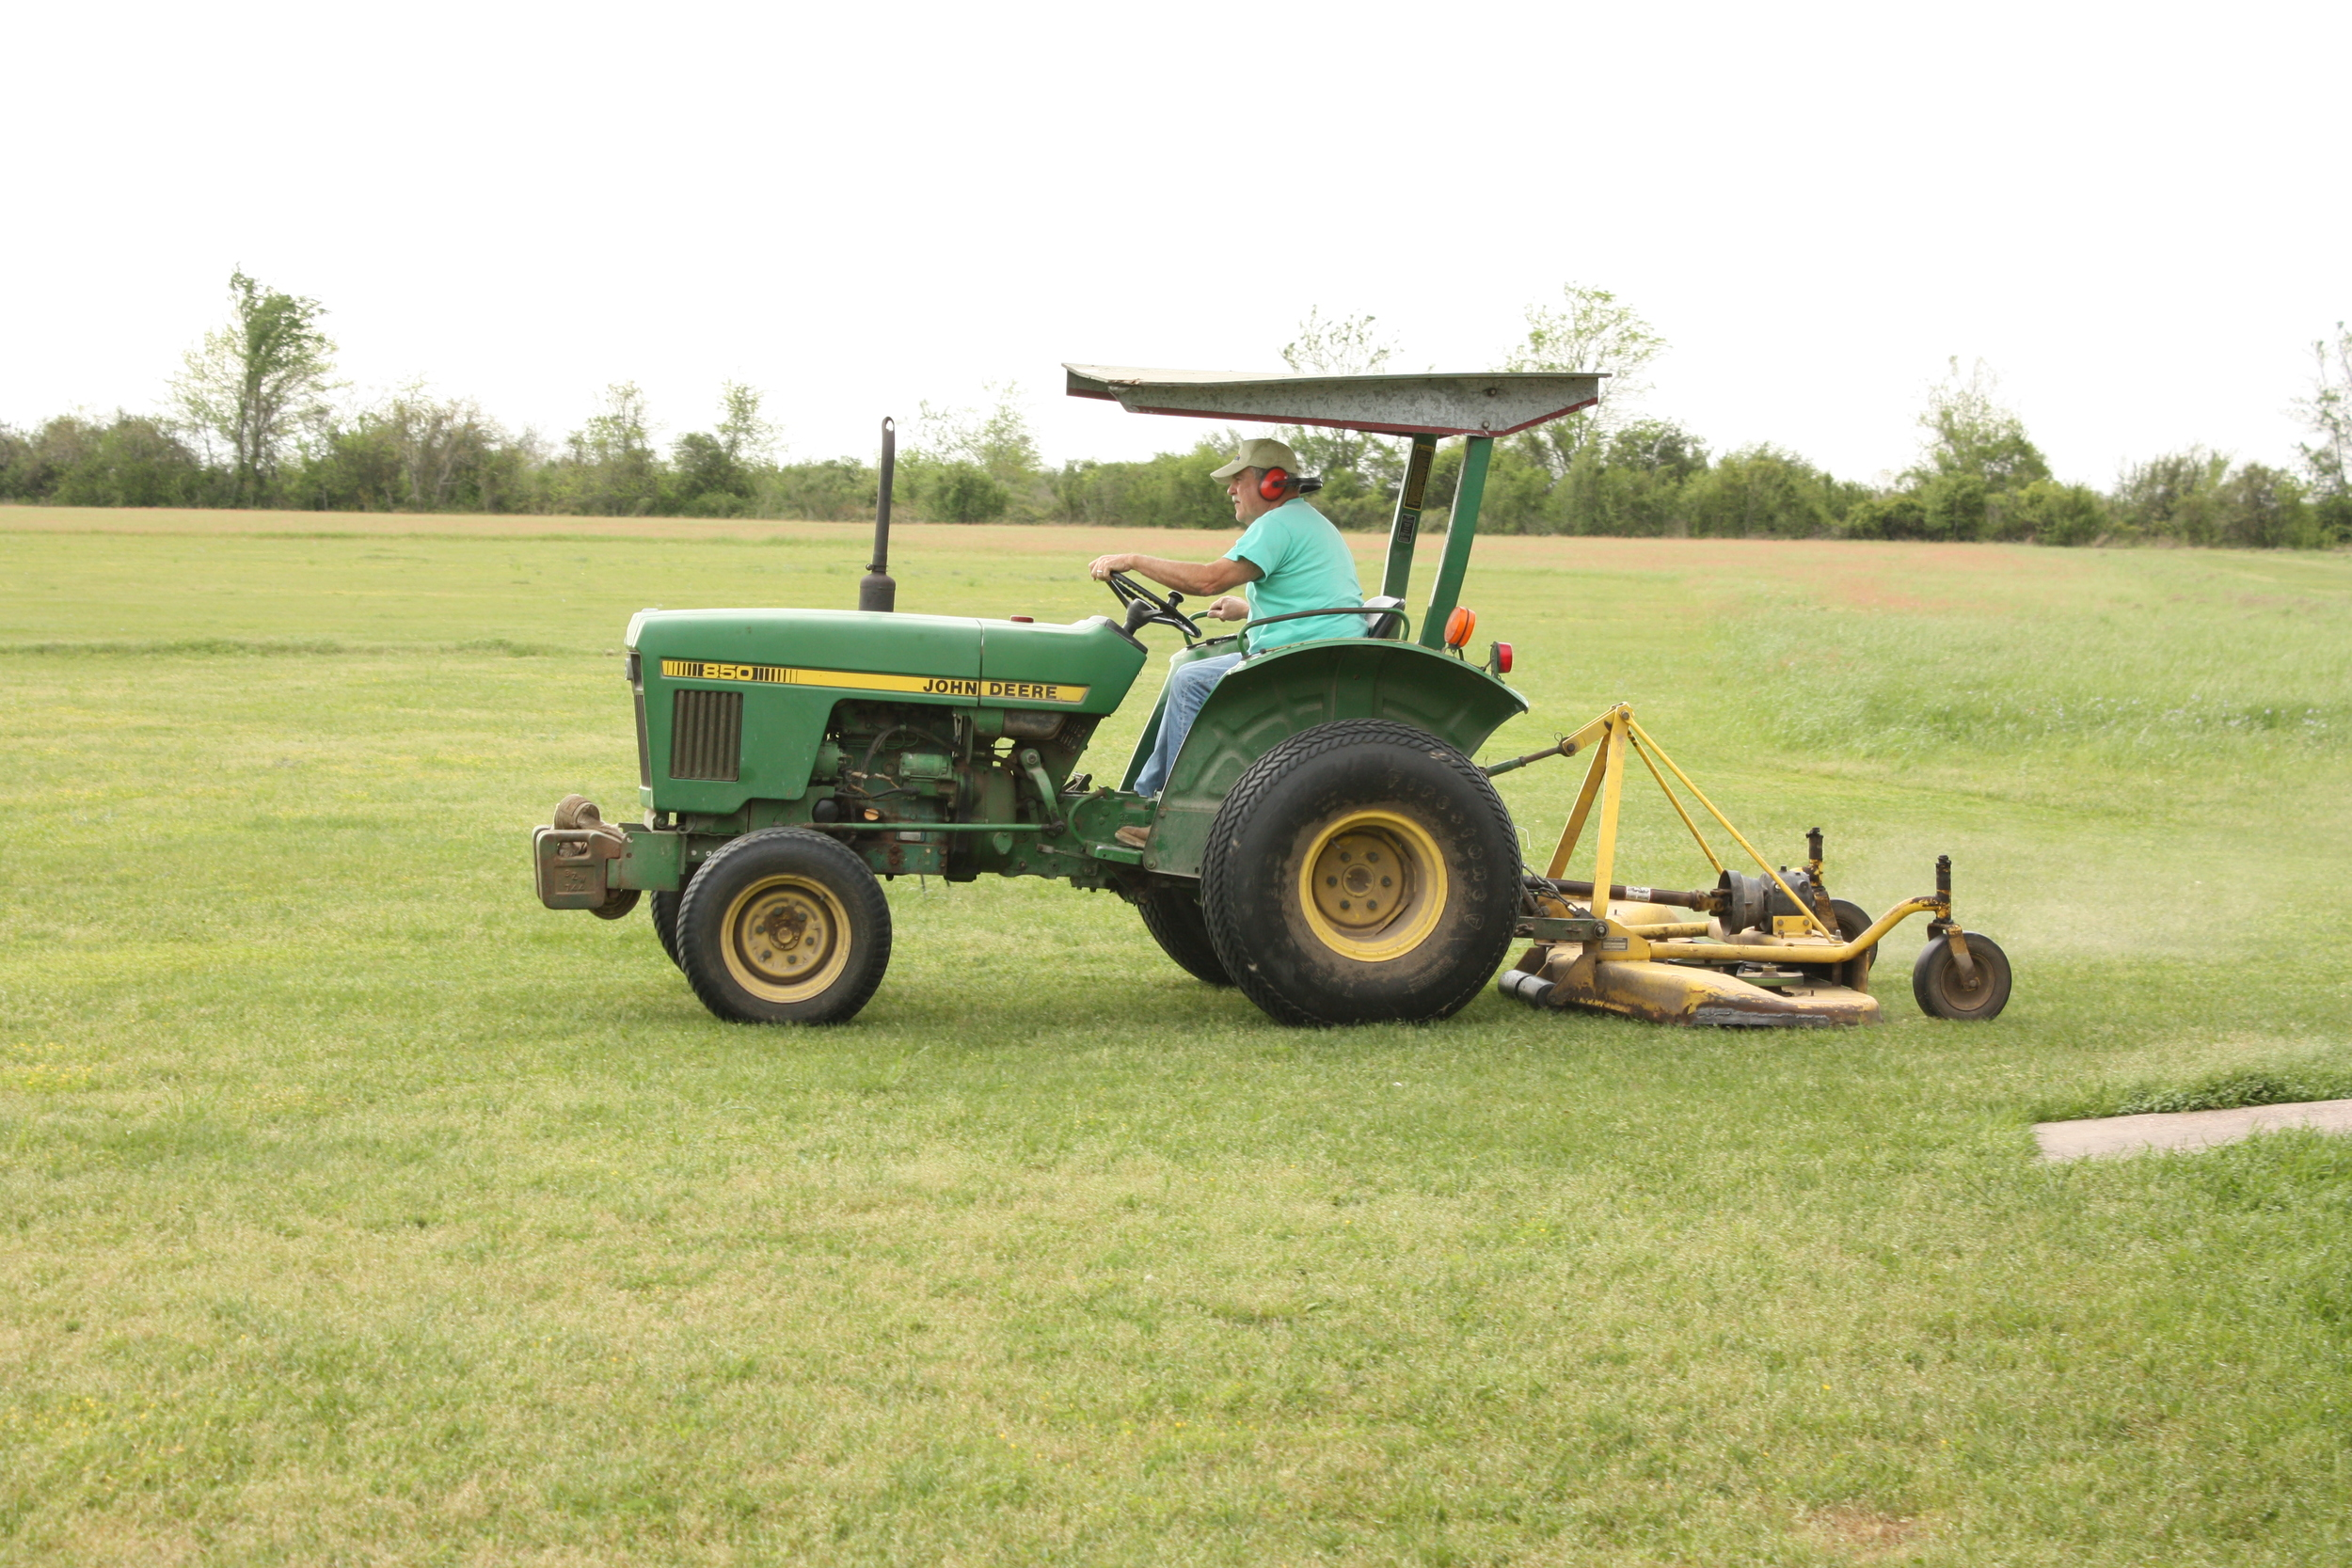 Tractor Ready for Another Season